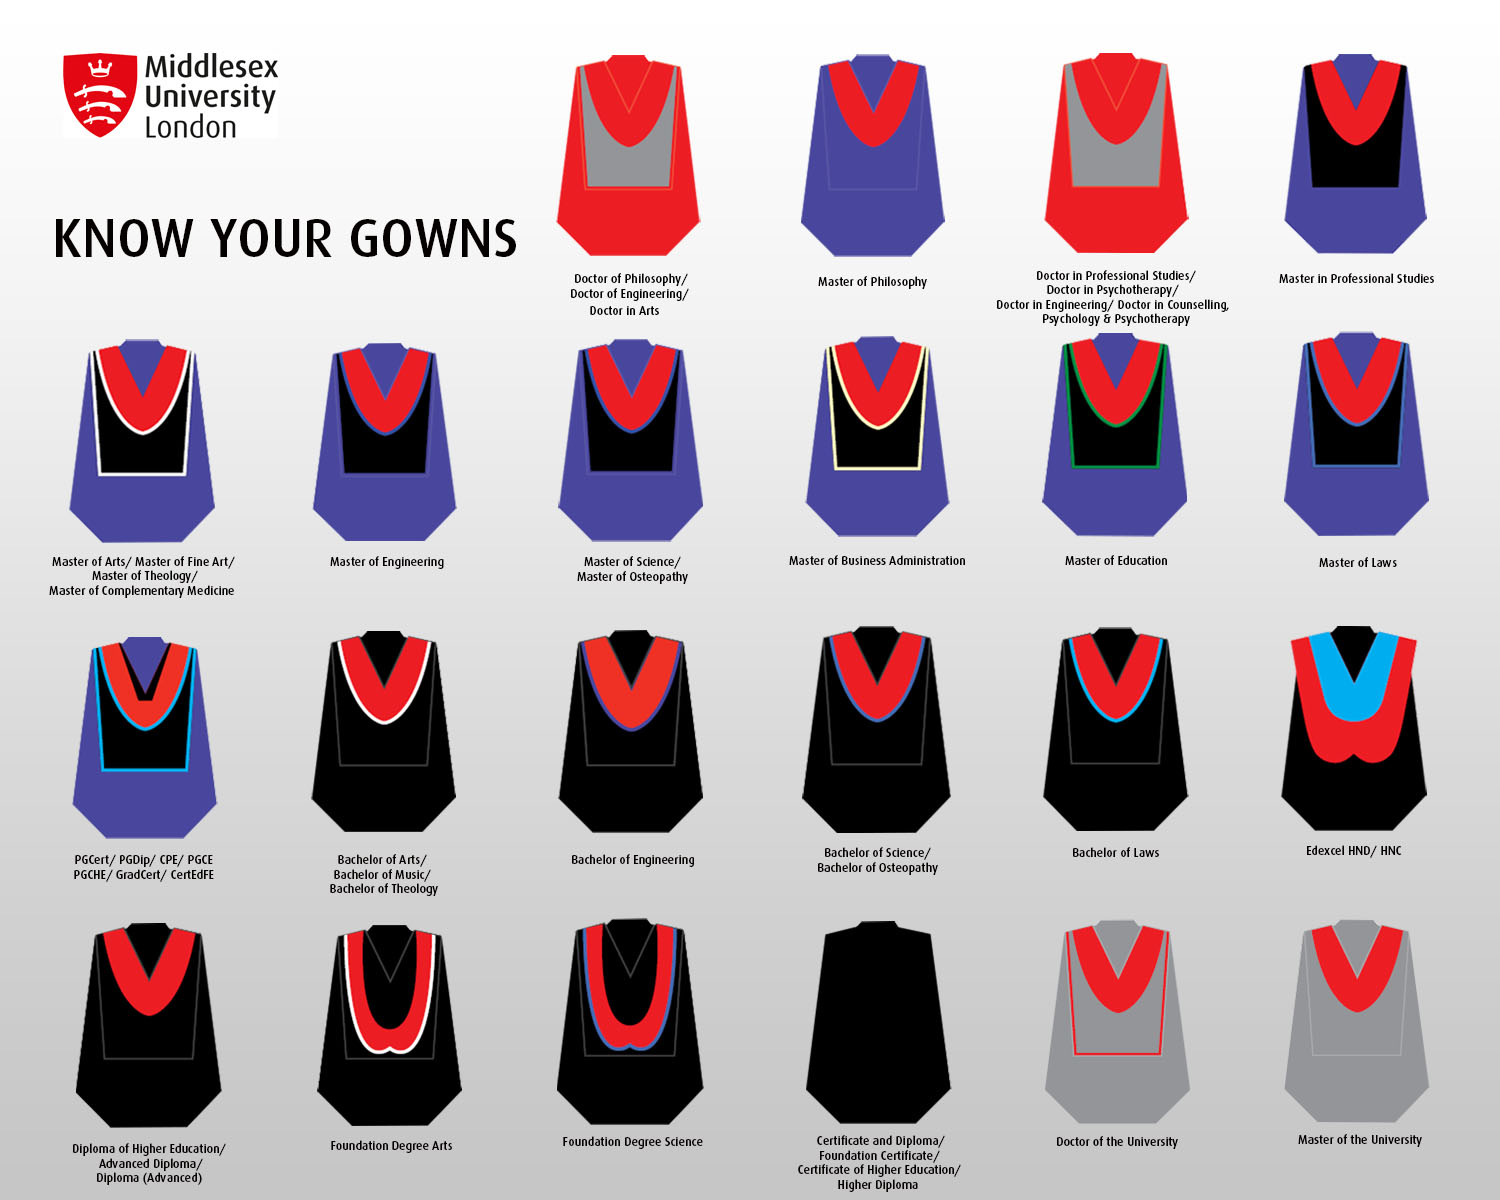 Know your gowns